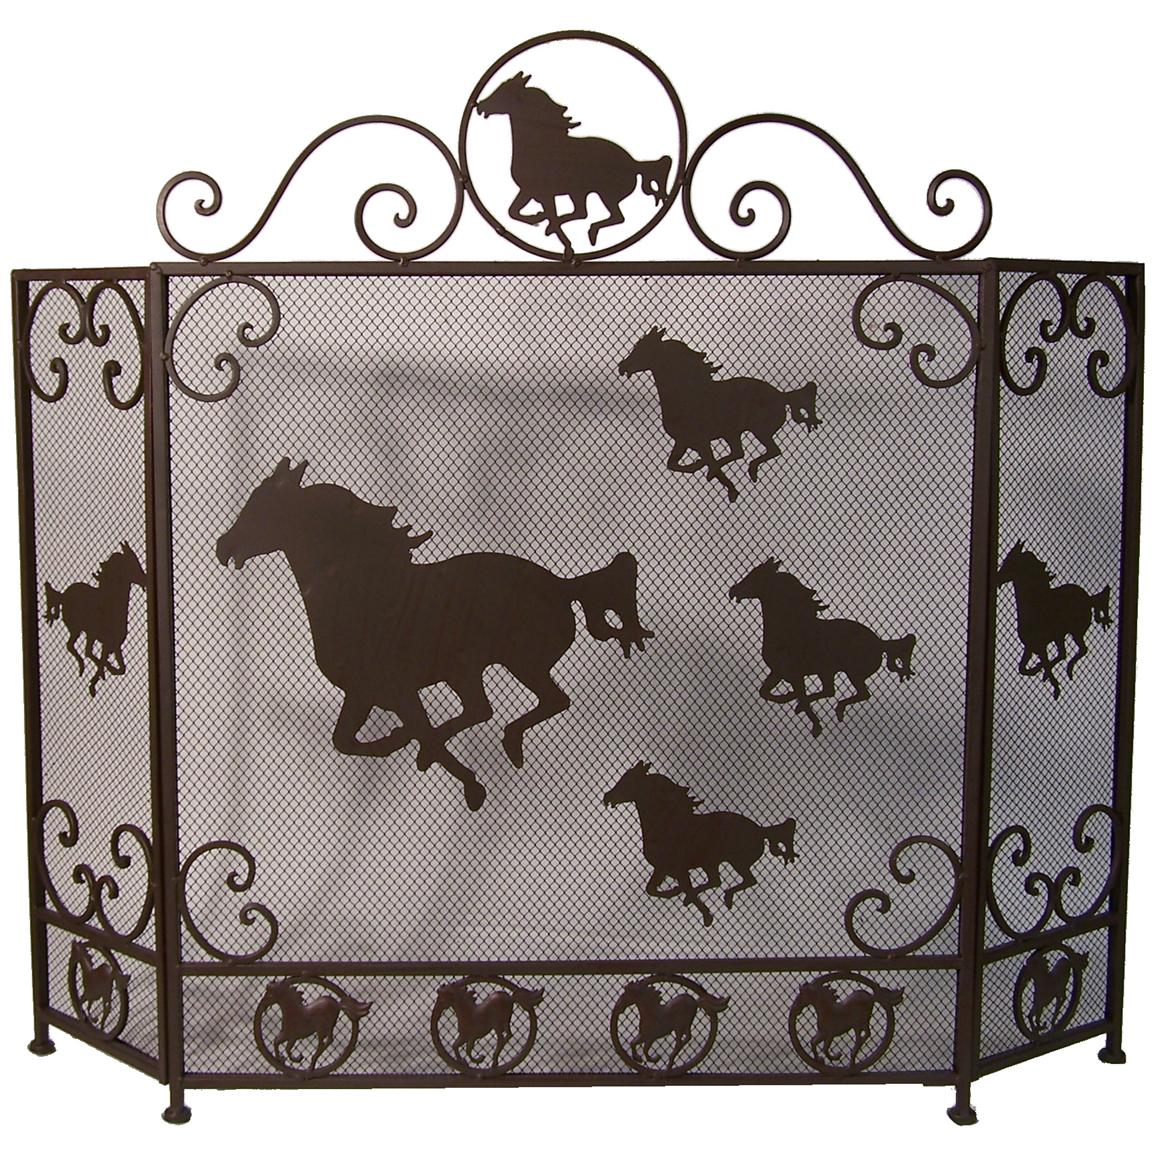 DeLeon Collections Horse Design Metal Fireplace Screen